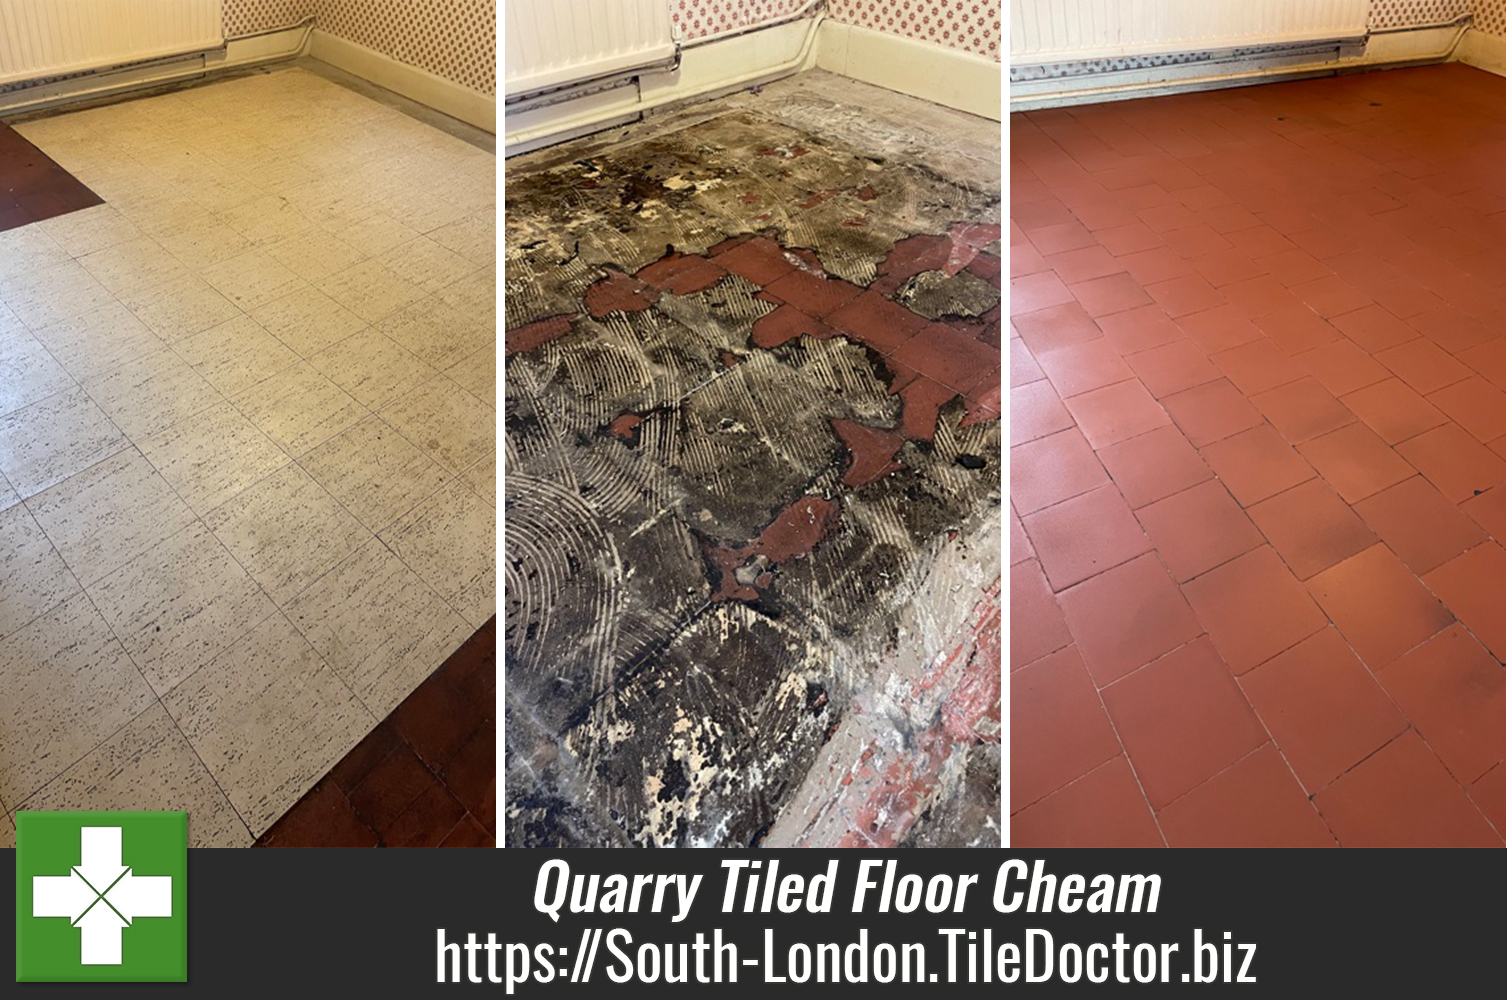 Vinyl Covered Quarry Tiled Floor Restored in Cheam